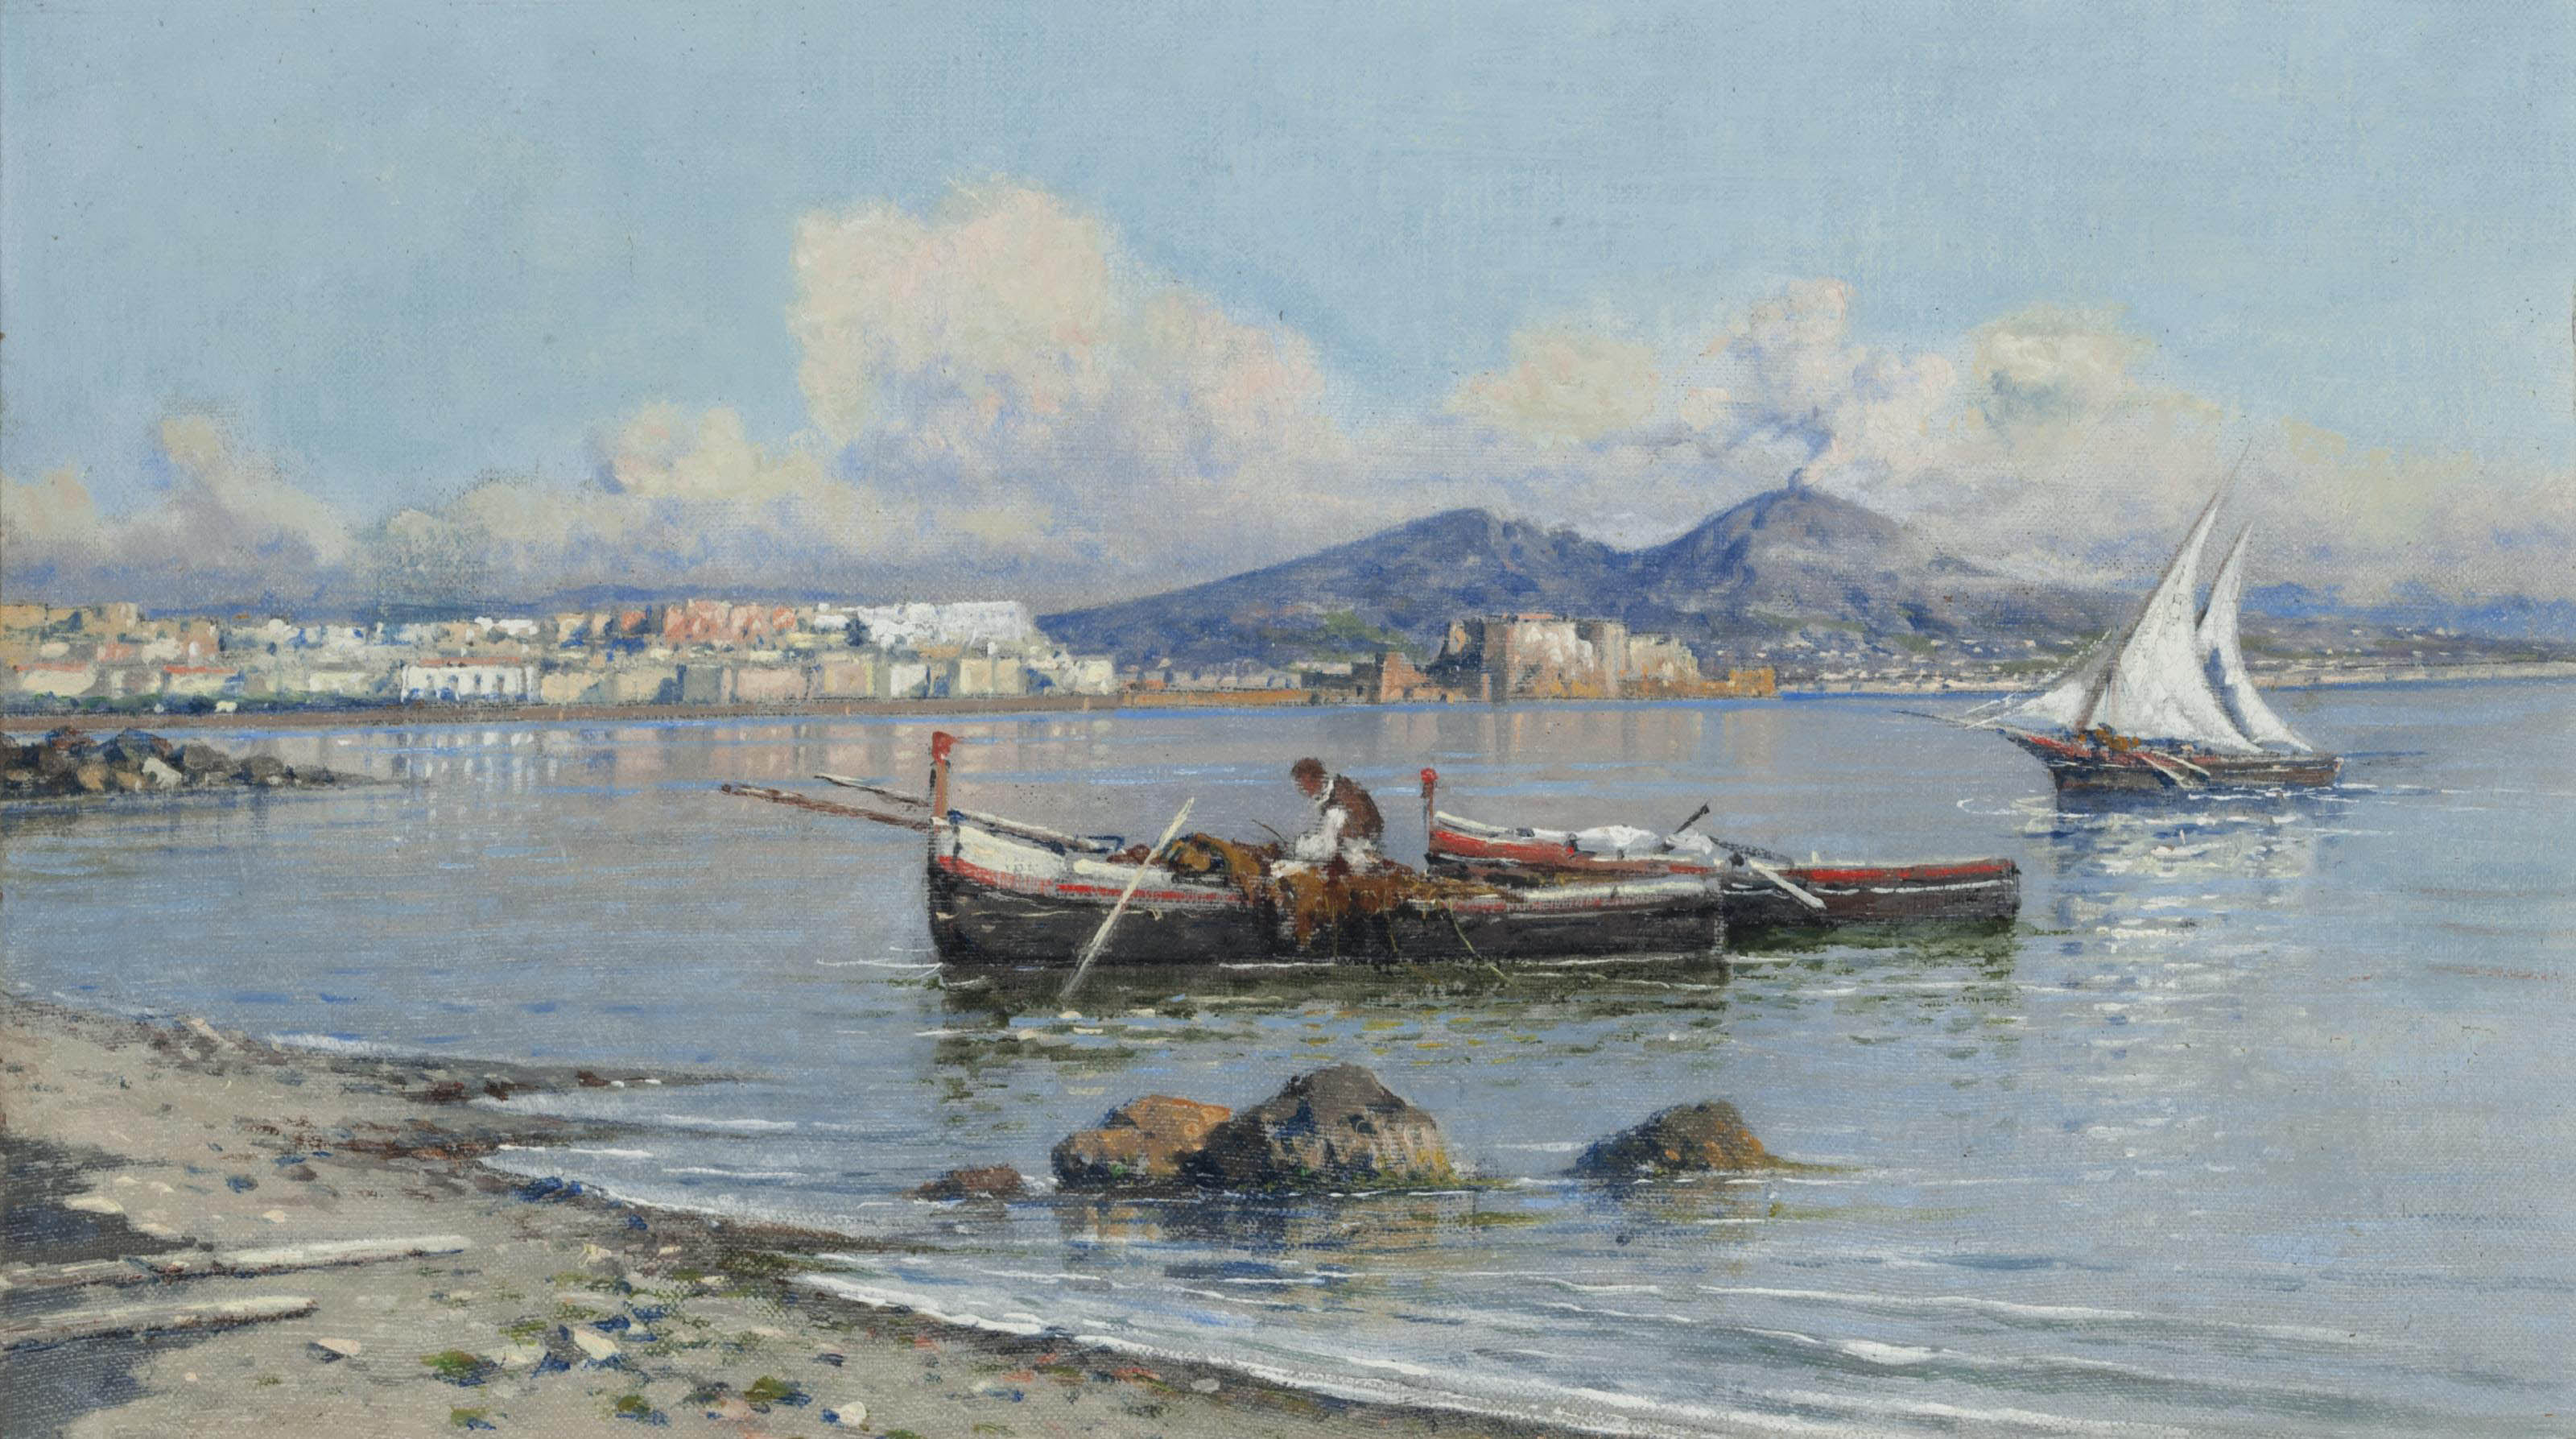 A fisherman tending to his nets on the Bay of Naples, Vesuvius beyond